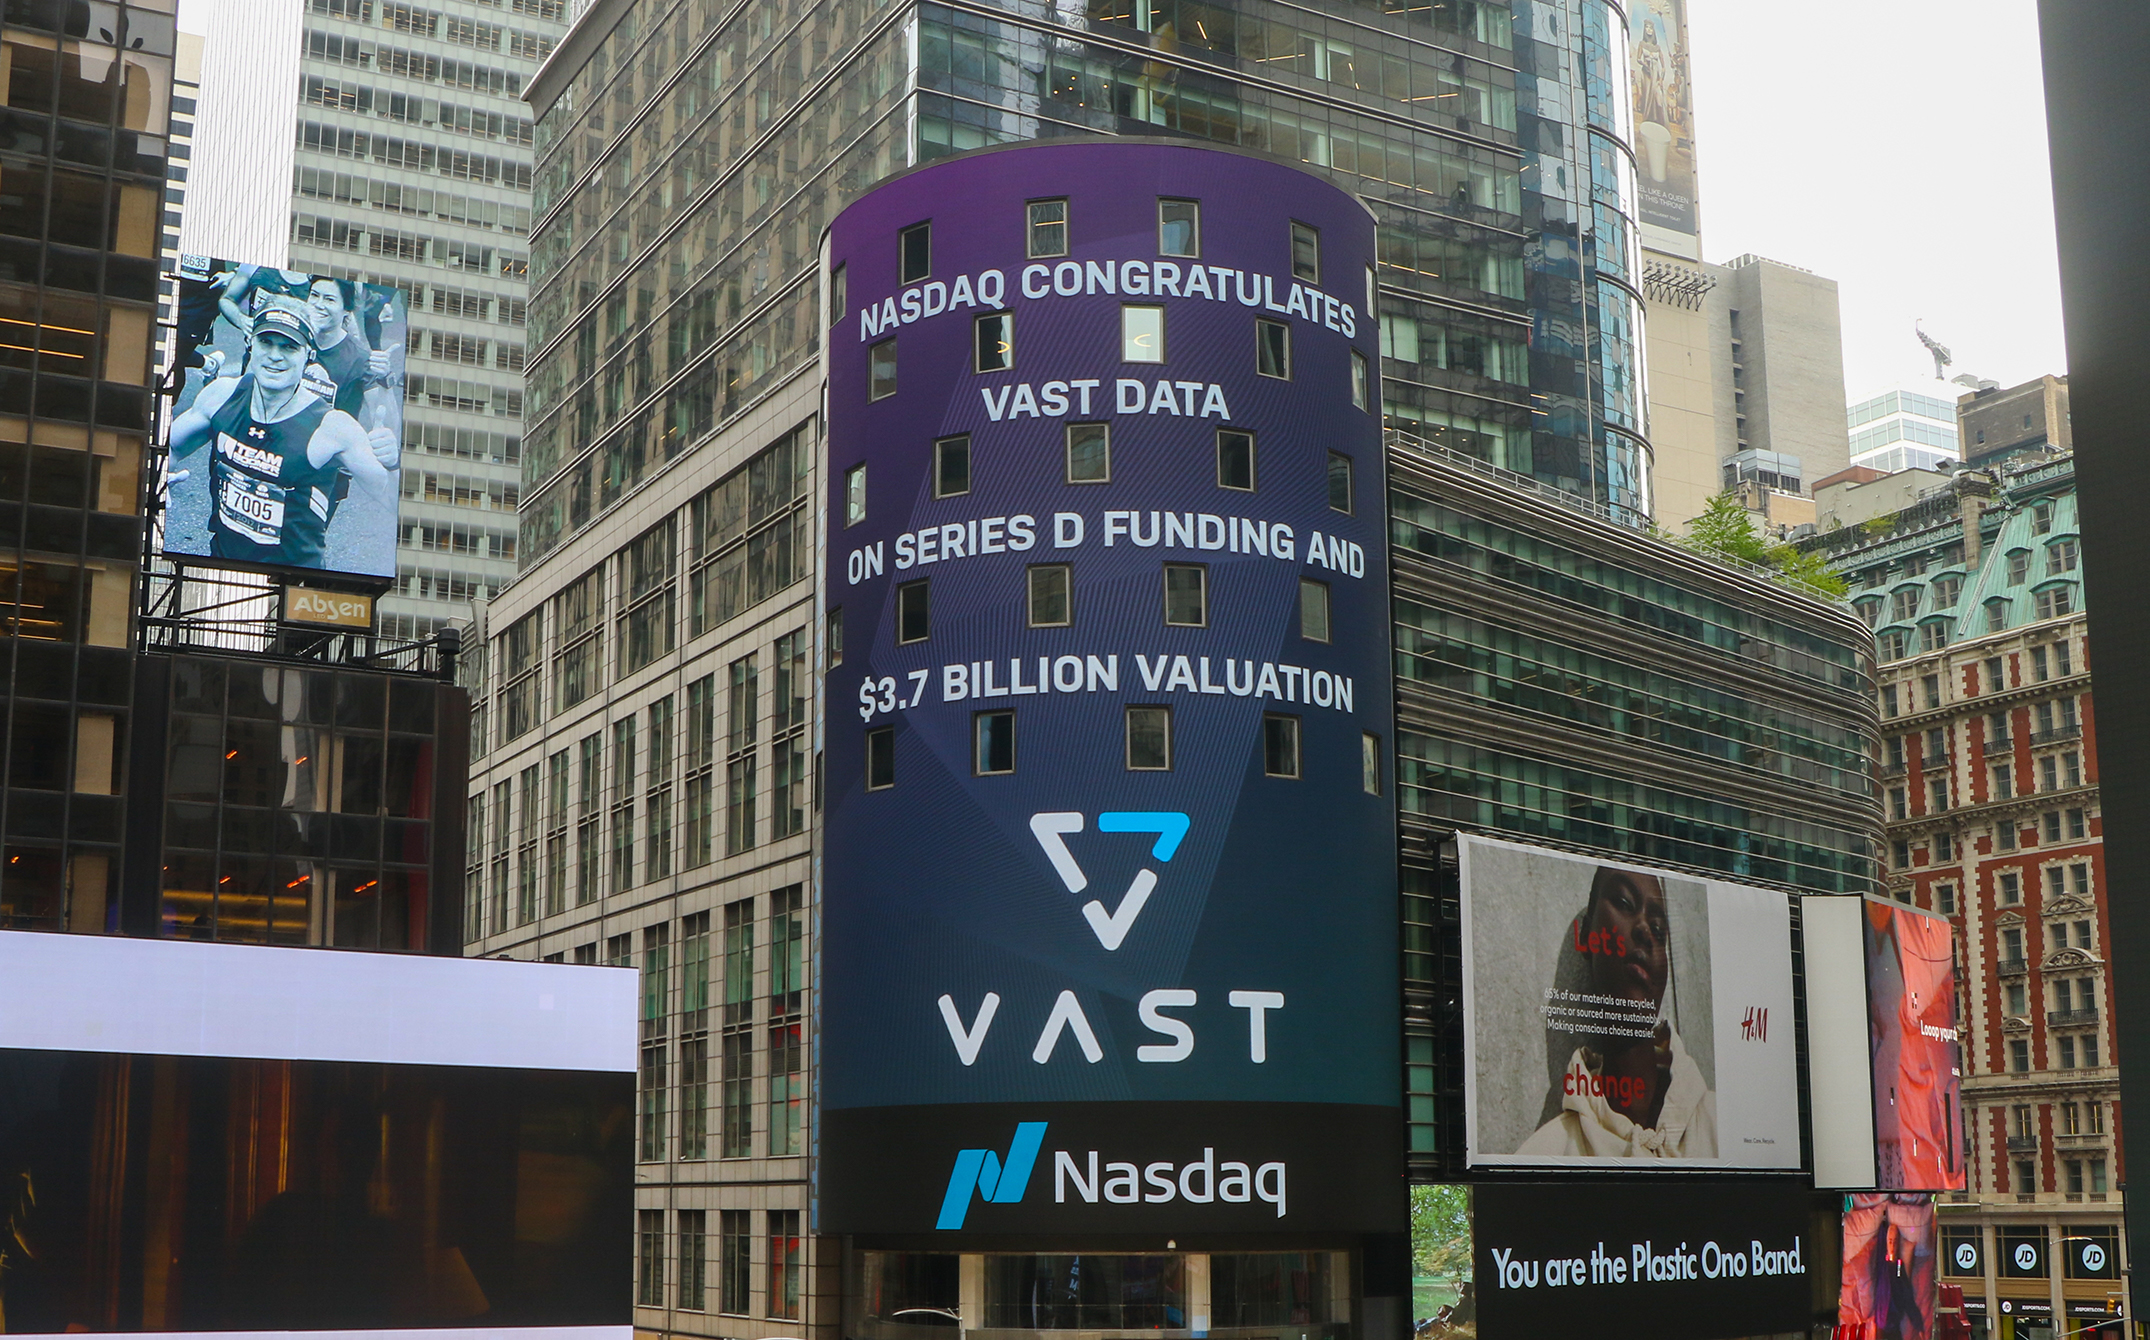 VAST Data Triples Valuation in One Year to $3.7 Billion